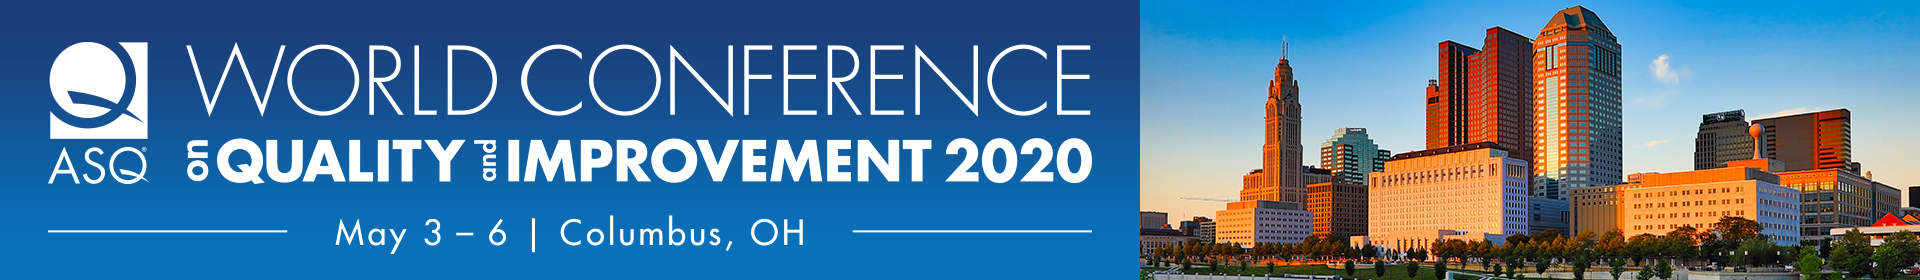 2020 World Conference Call for Reviewers Event Banner